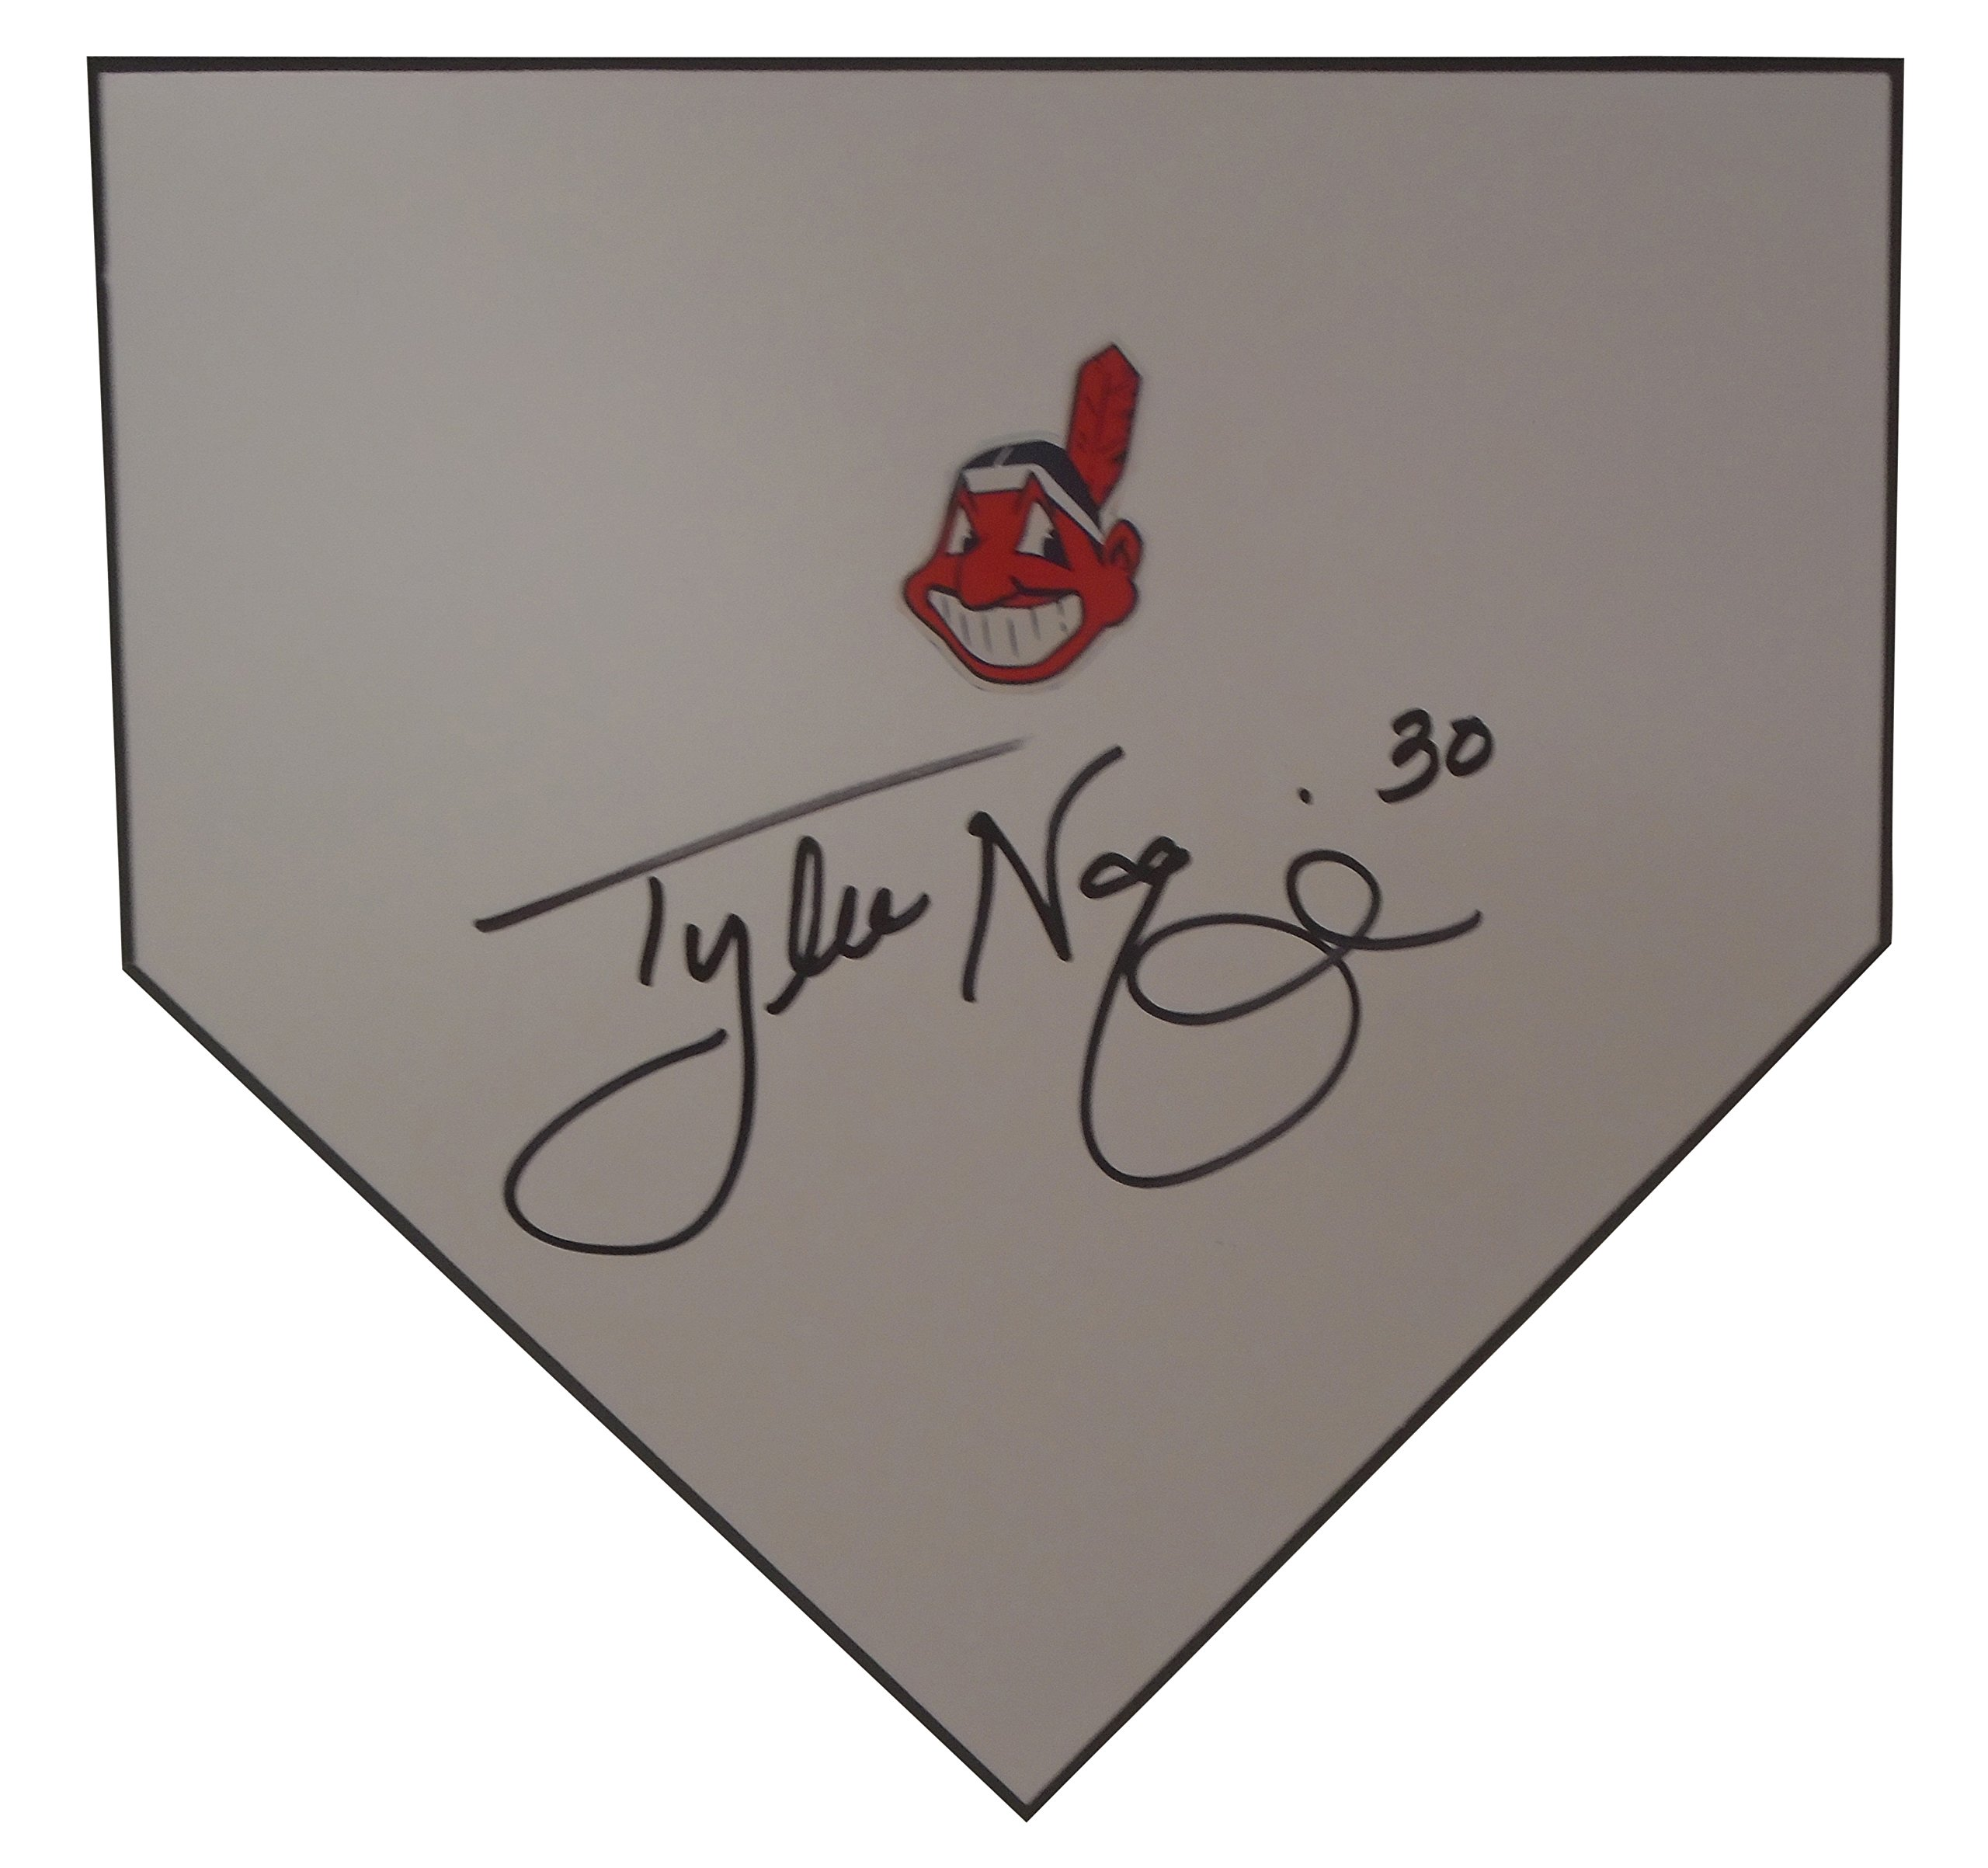 Cleveland Indians Tyler Naquin Autographed Hand Signed Baseball Home Plate Base with Proof Photo of Signing and COA